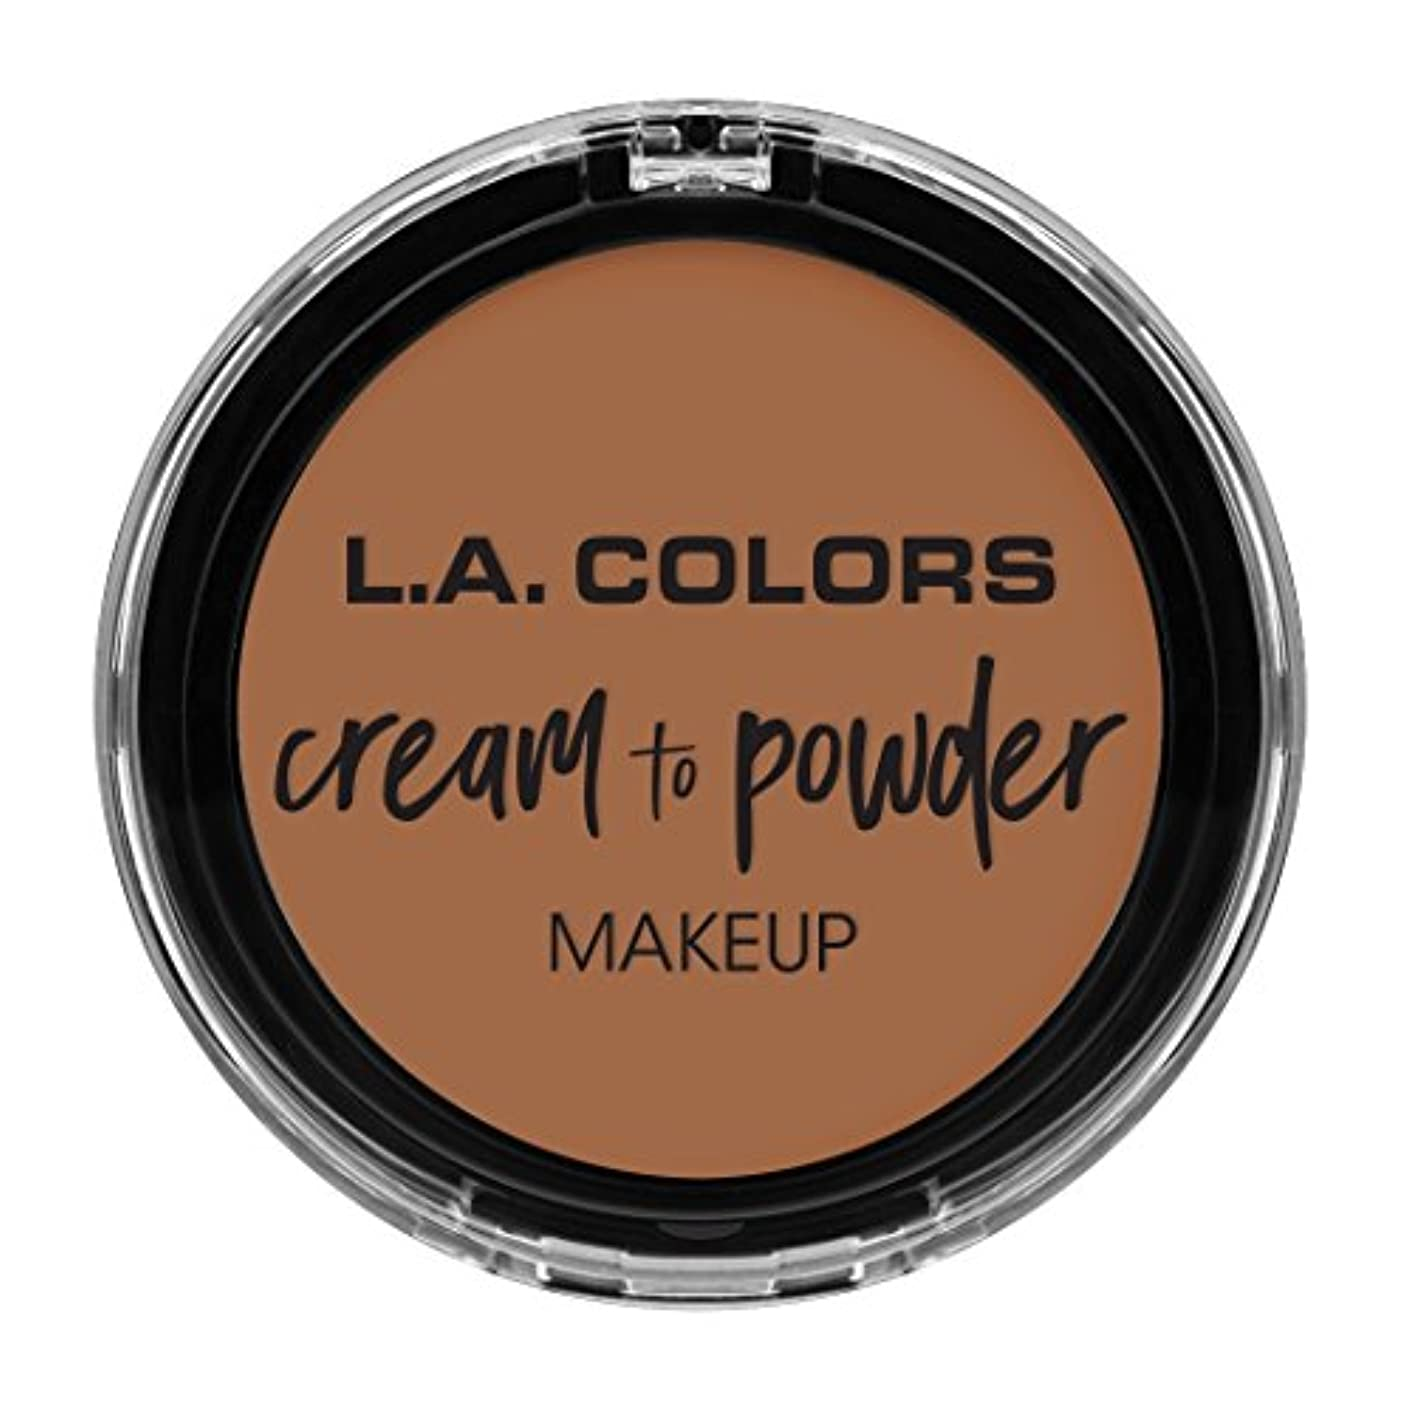 試み読みやすさレビューL.A. COLORS Cream To Powder Foundation - Medium Beige (並行輸入品)